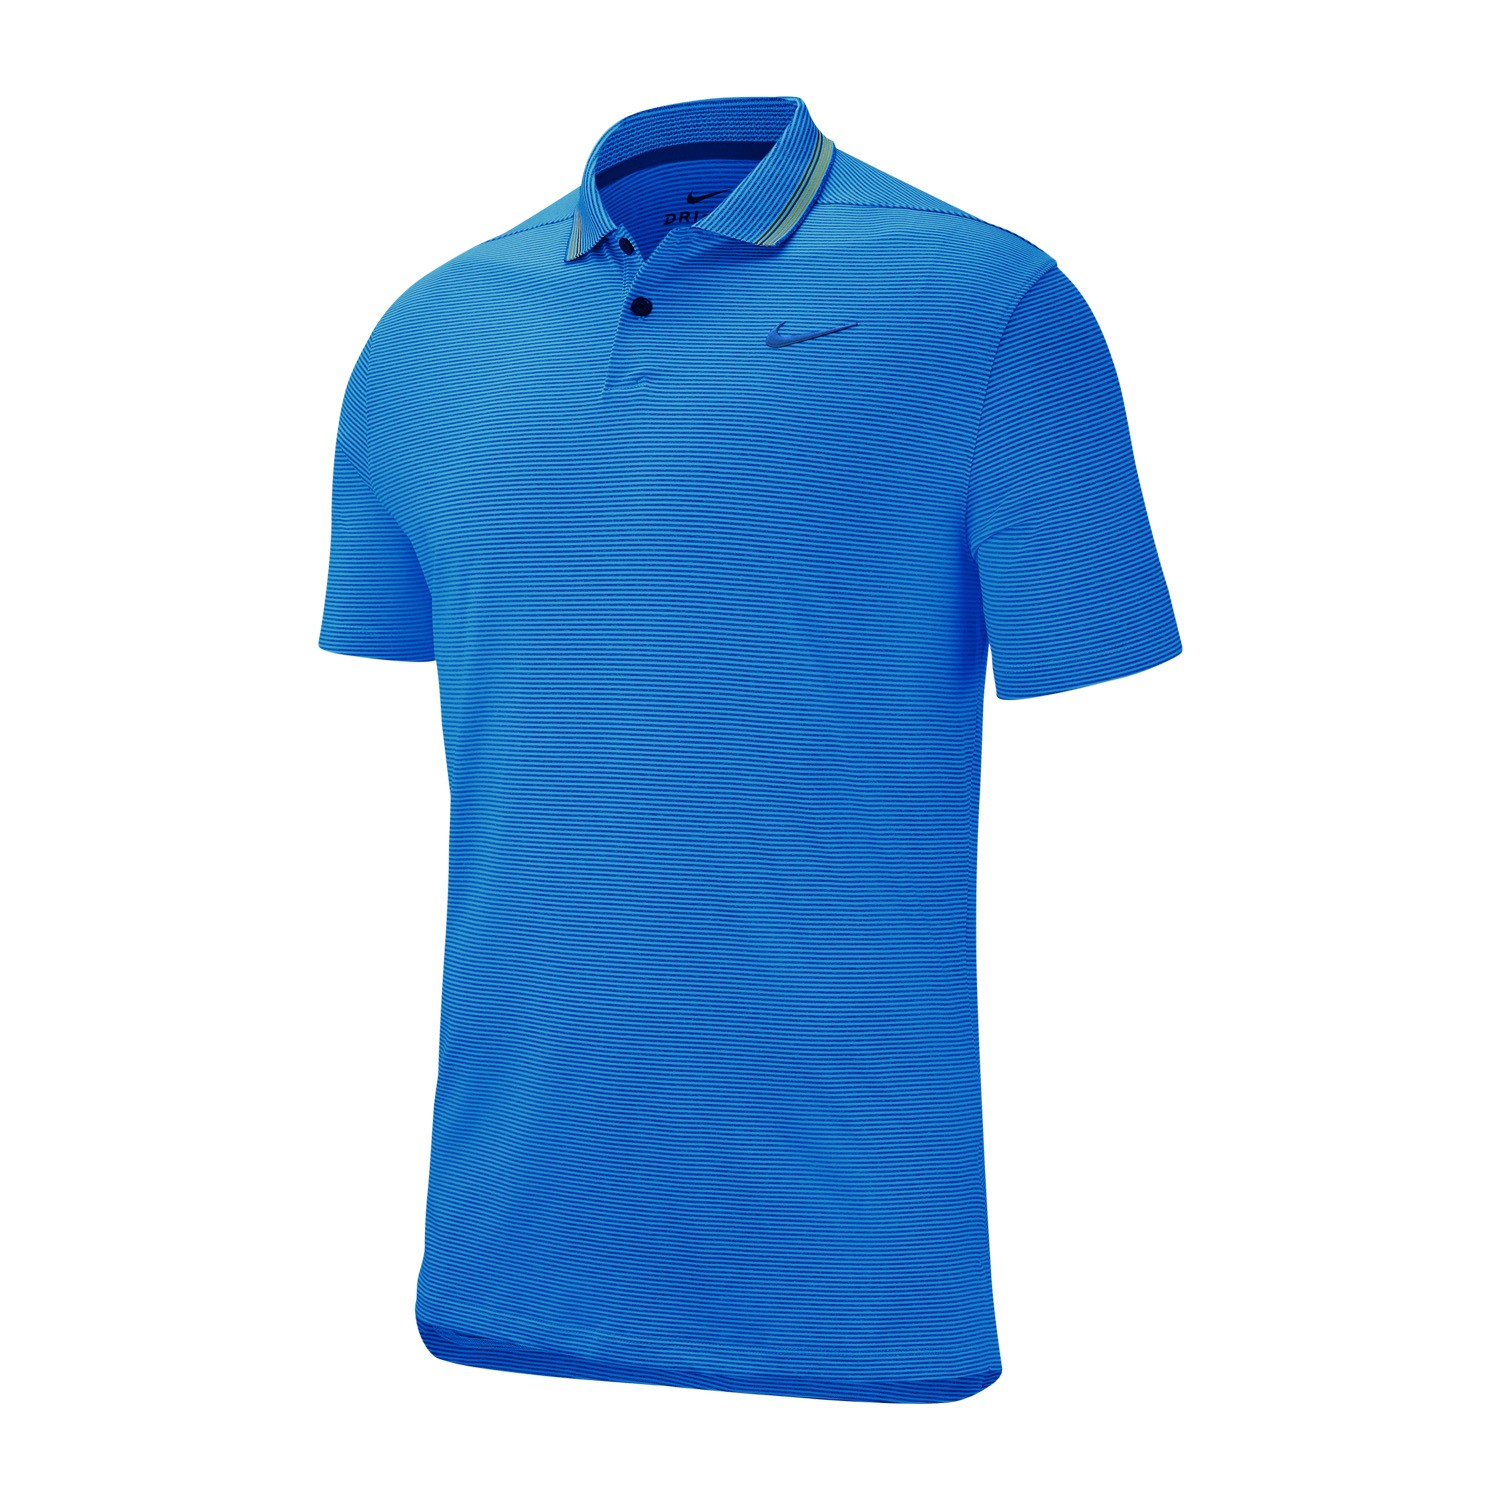 Nike Dri-Fit Vapor Polo